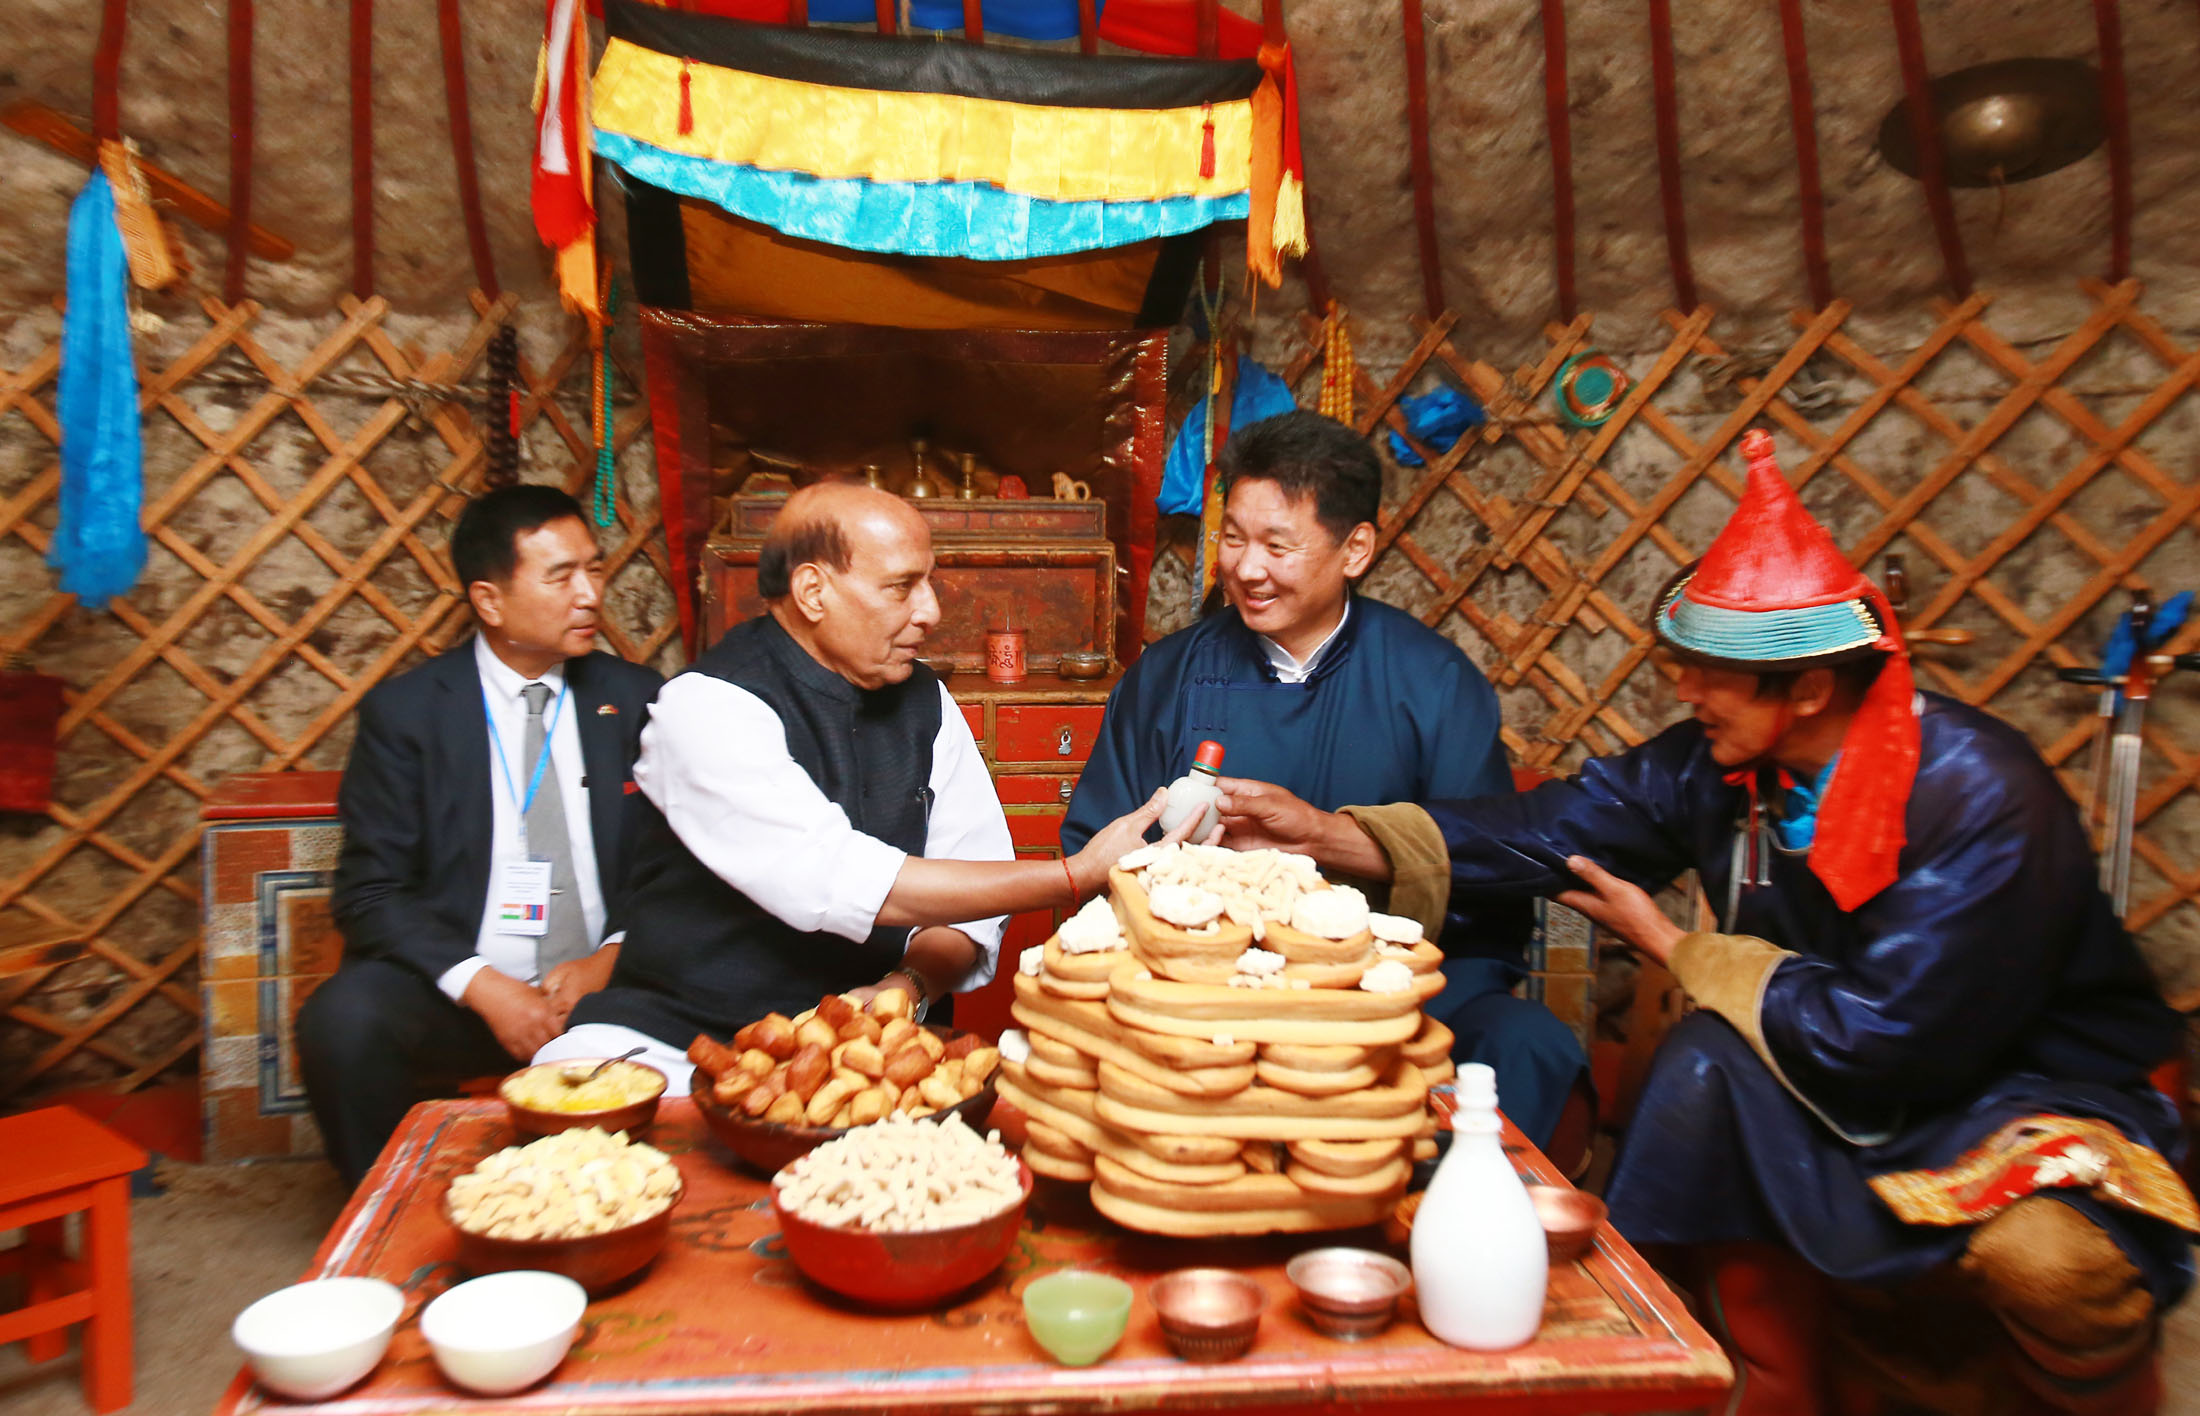 The Union Home Minister, Shri Rajnath Singh visiting the 'Ger' of a Nomadic Tribe family, in Mongolia on June 23, 2018. The Prime Minister of Mongolia, Mr. Ukhnaagin Khurelsukh is also seen.